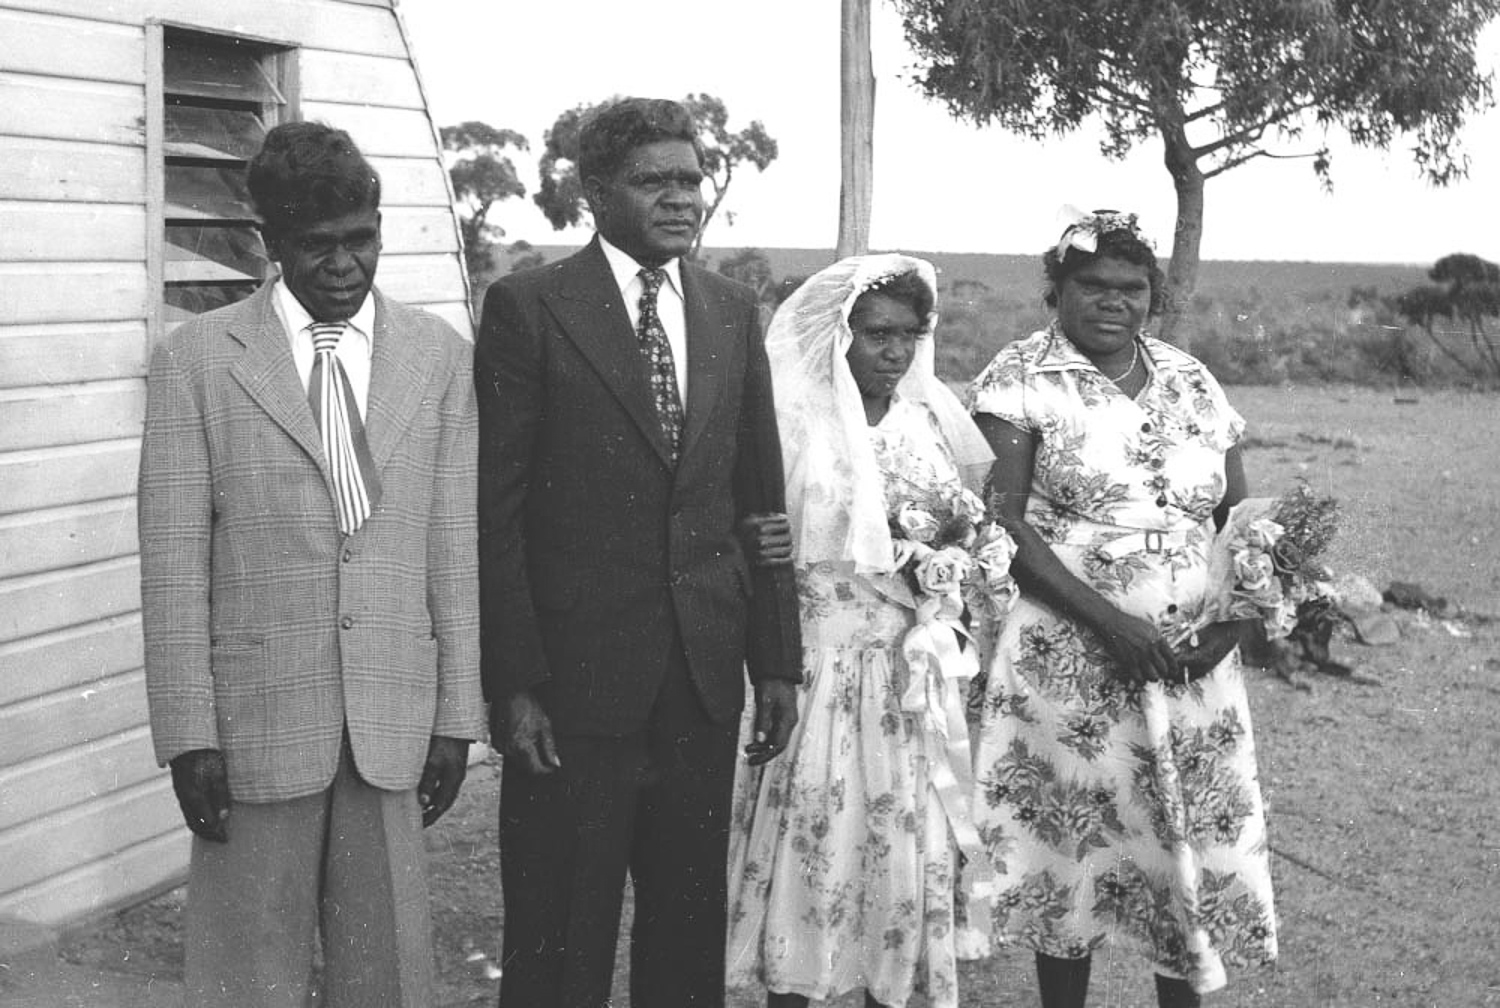 Don and May Sinclair on their wedding day. As the influence of the missionaries began to take hold, Anangu would adopt western cultural practices. The Sinclair's children and grandchildren now live in Tjuntjuntjara.